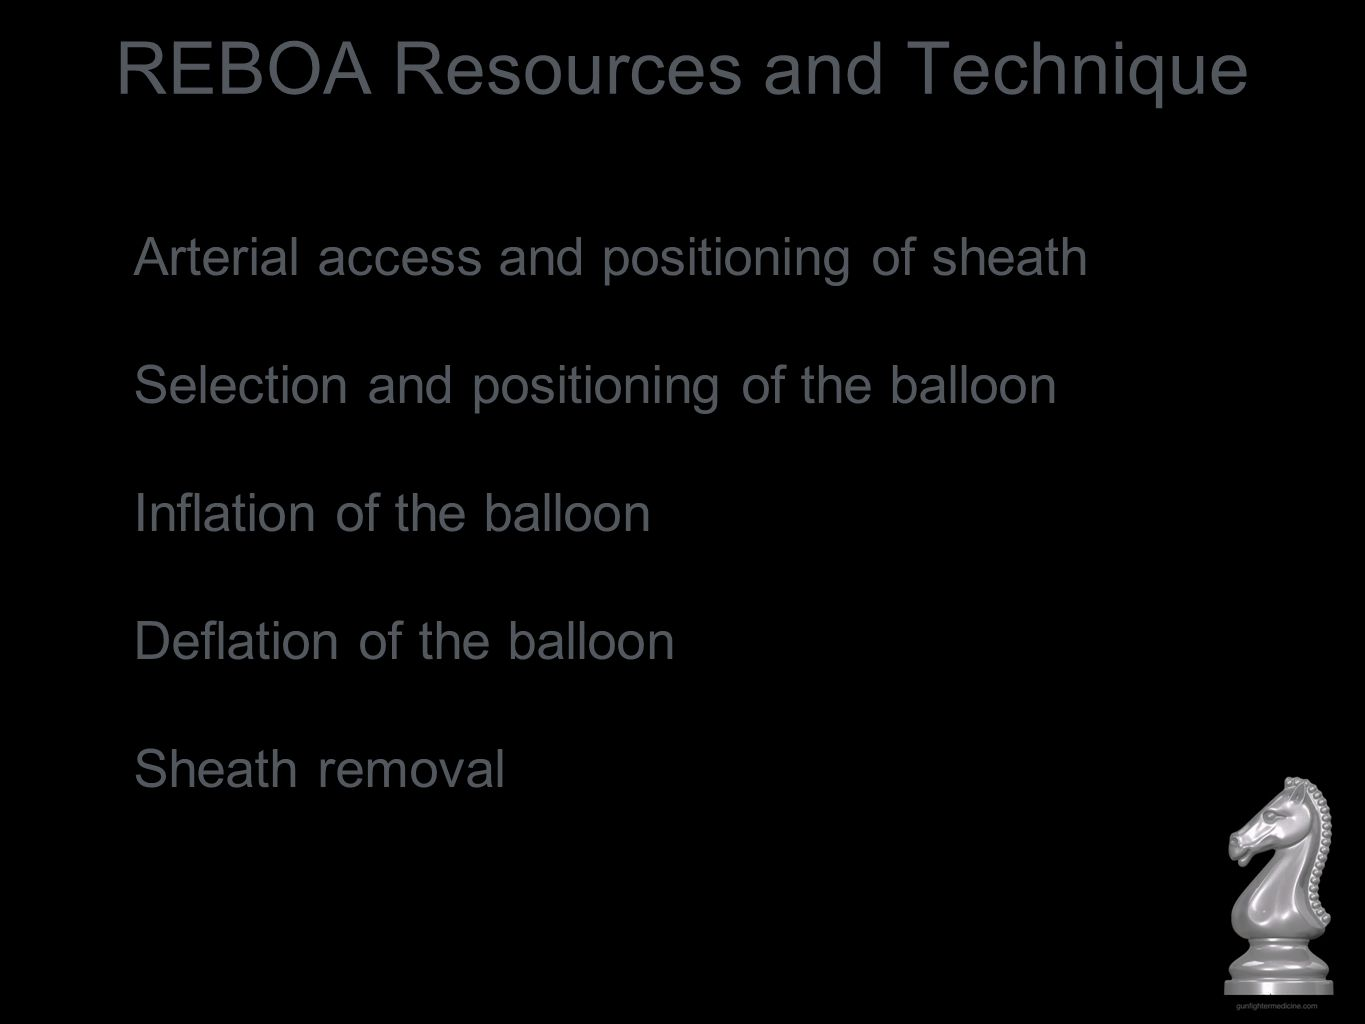 REBOA Resources and Technique Arterial access and positioning of sheath Selection and positioning of the balloon Inflation of the balloon Deflation of